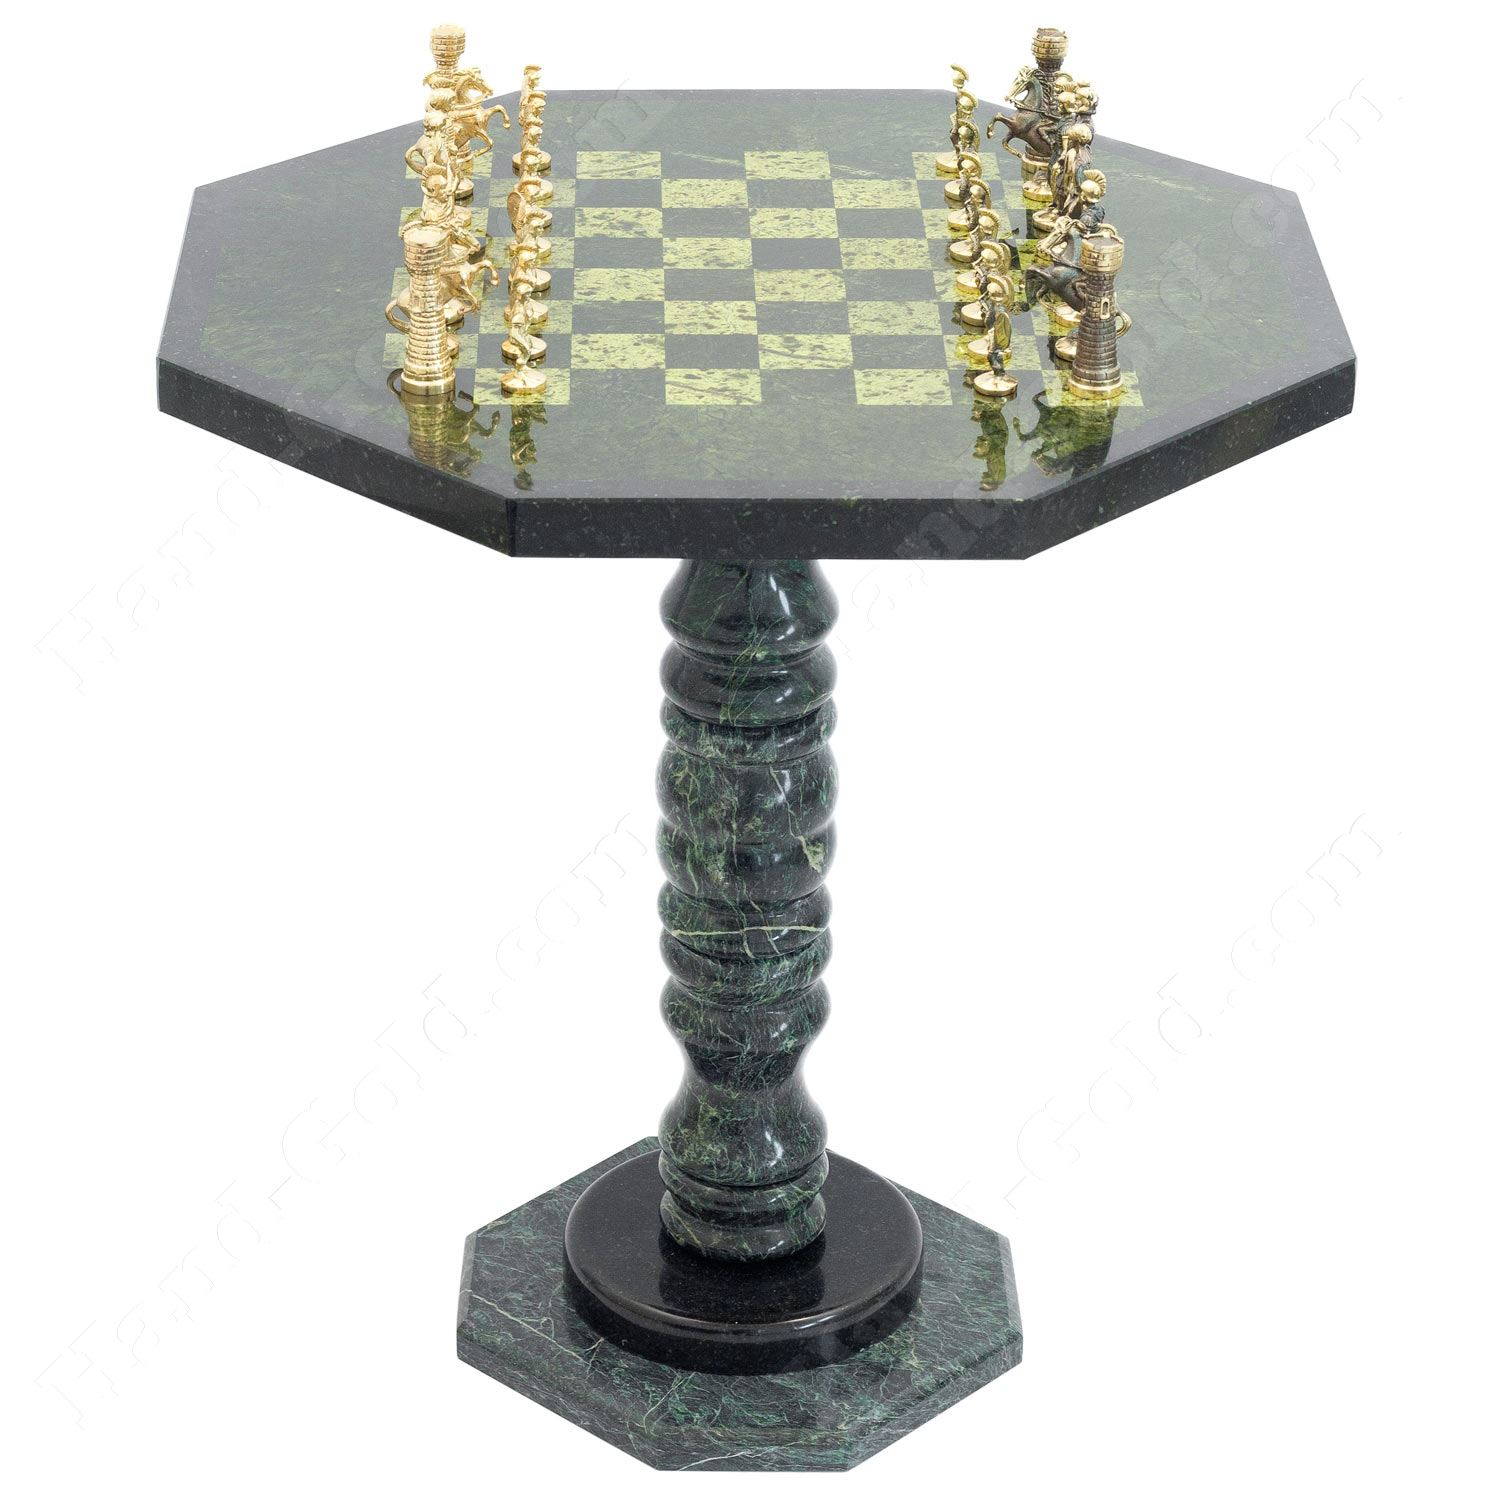 Where To Buy Chess Chess Tables Of Stone Chess Table From Coil With